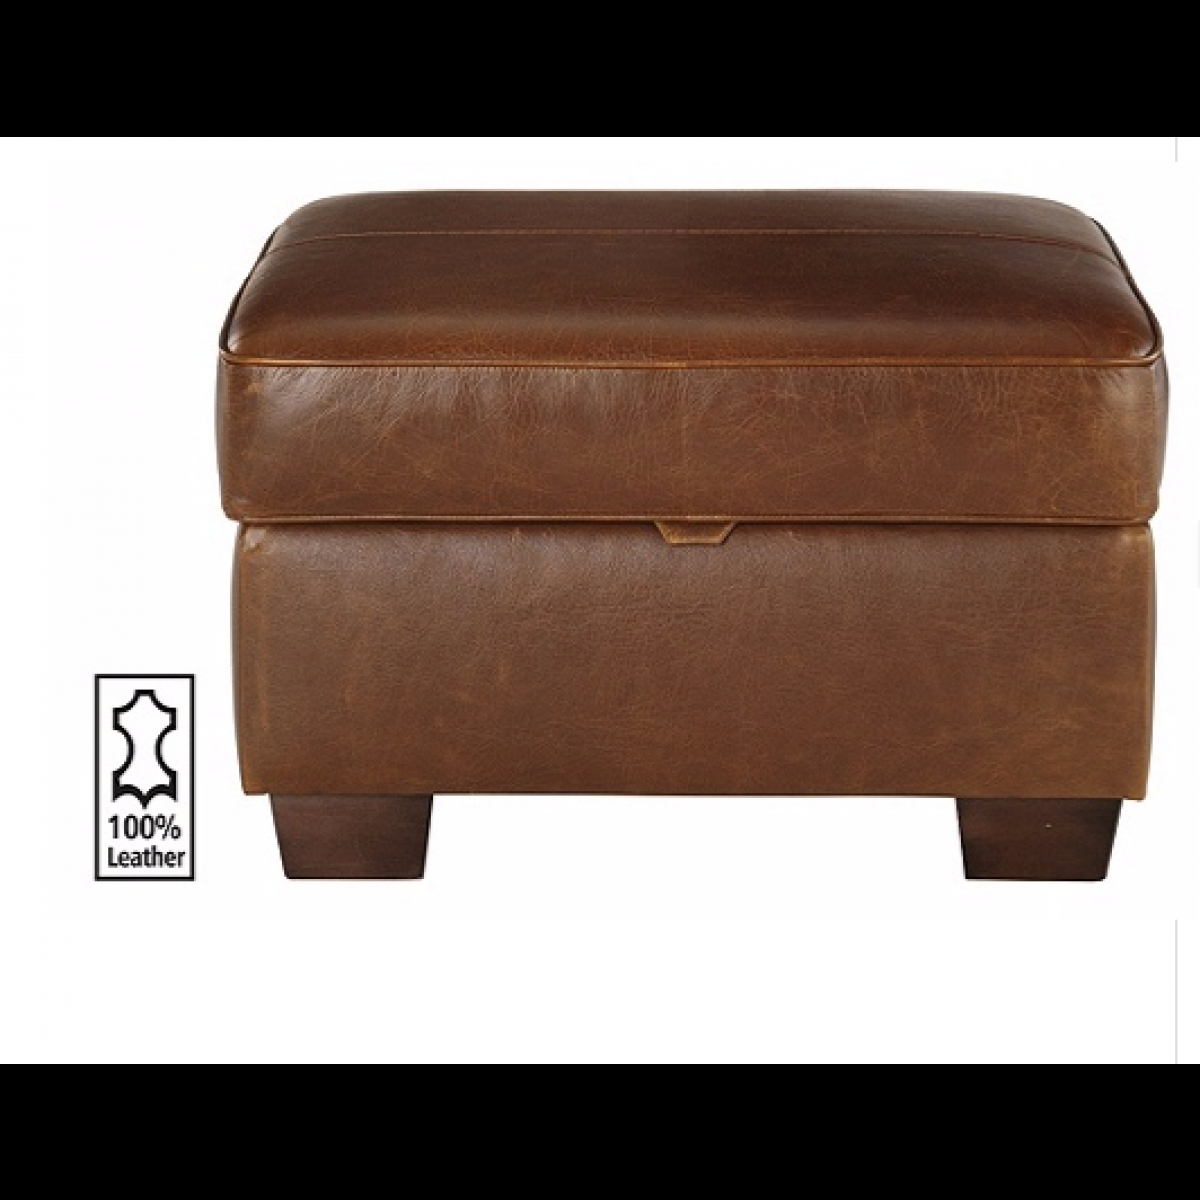 Heart Of House Salisbury Leather Footstool Tan Furnico Village Within Leather Footstools (Image 9 of 15)